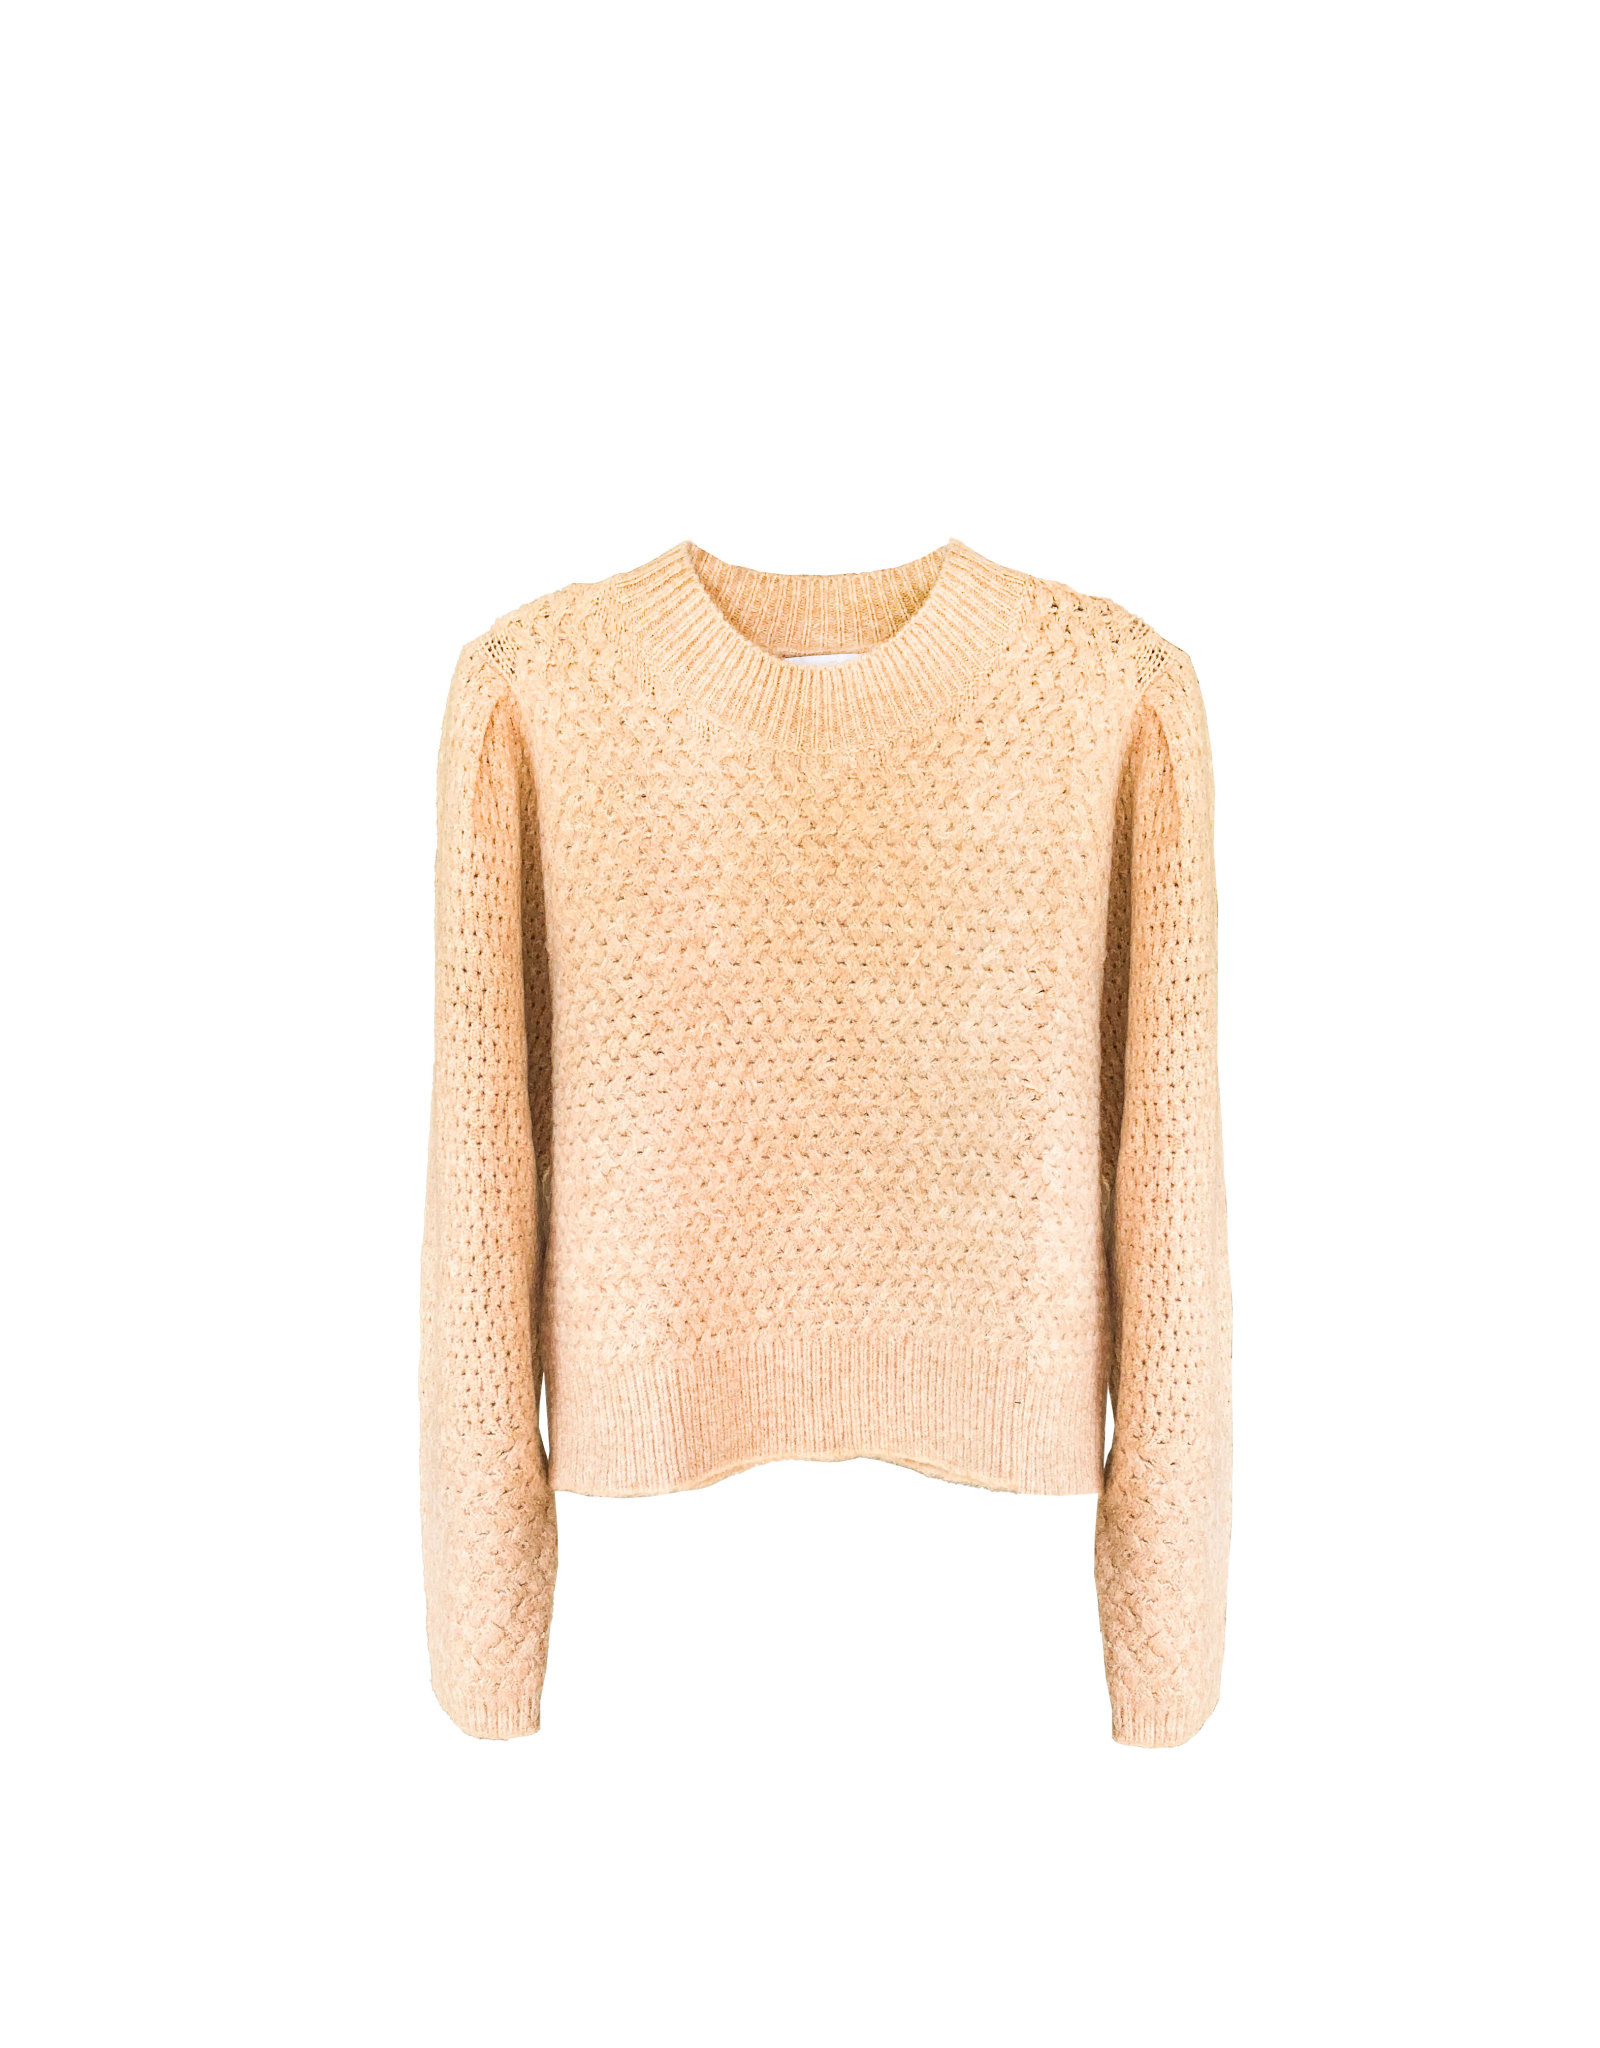 TOPSHOP Topshop Ribbed Cropped Knitted  Swester  Size 8-10